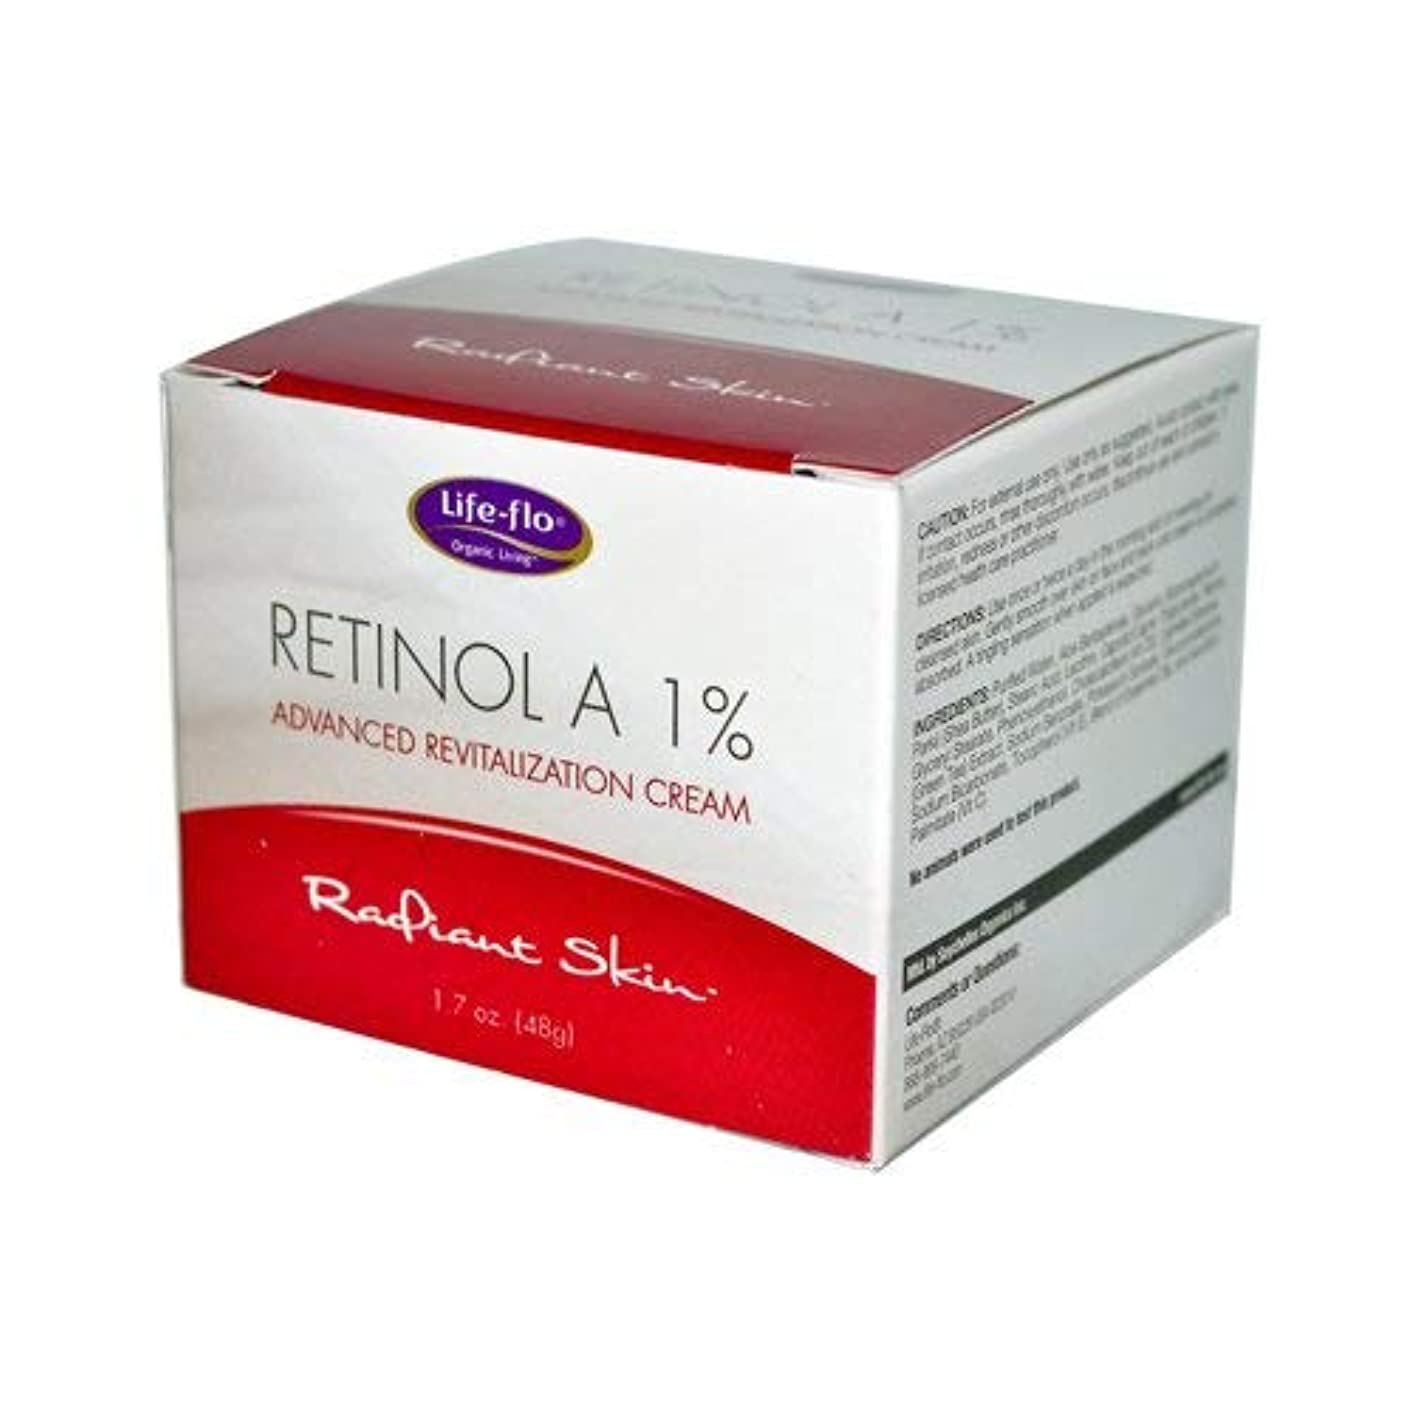 構造シリング宿命海外直送品 Life-Flo Retinol A 1% Advanced Revitalization Cream, 1.7 oz- 3 Packs